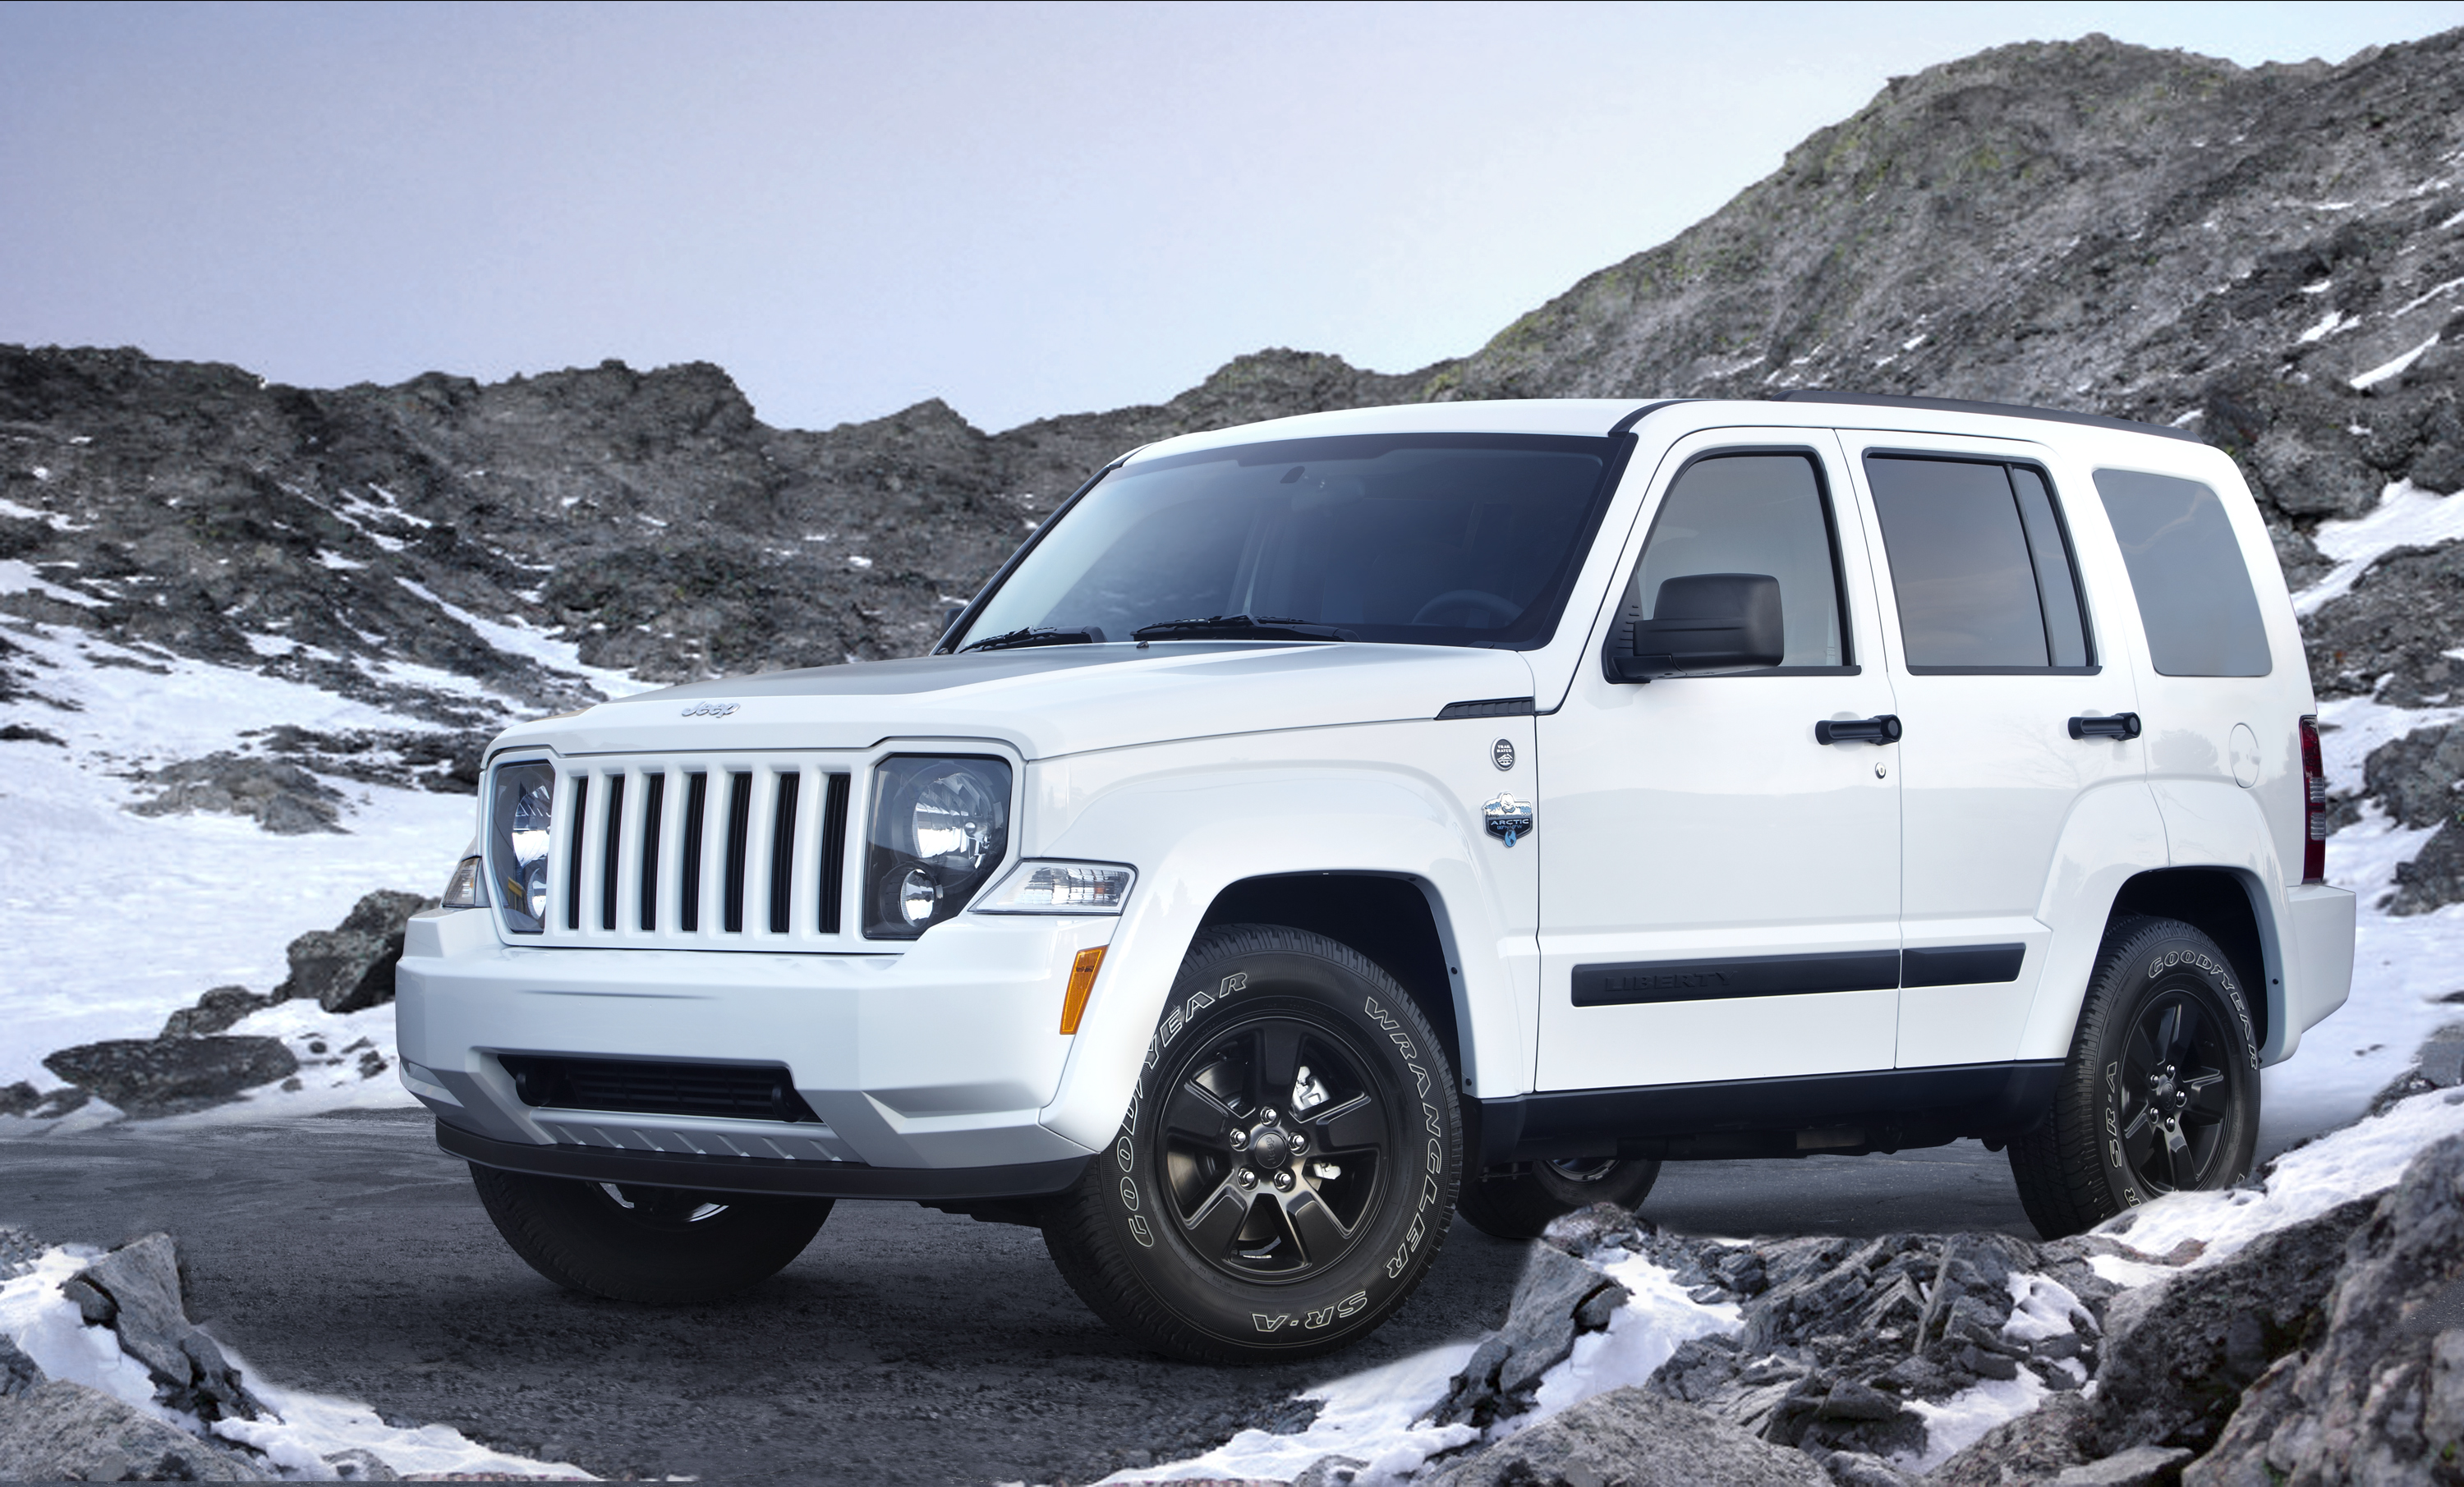 new 2012 jeep® wrangler arctic and liberty arctic models latest in